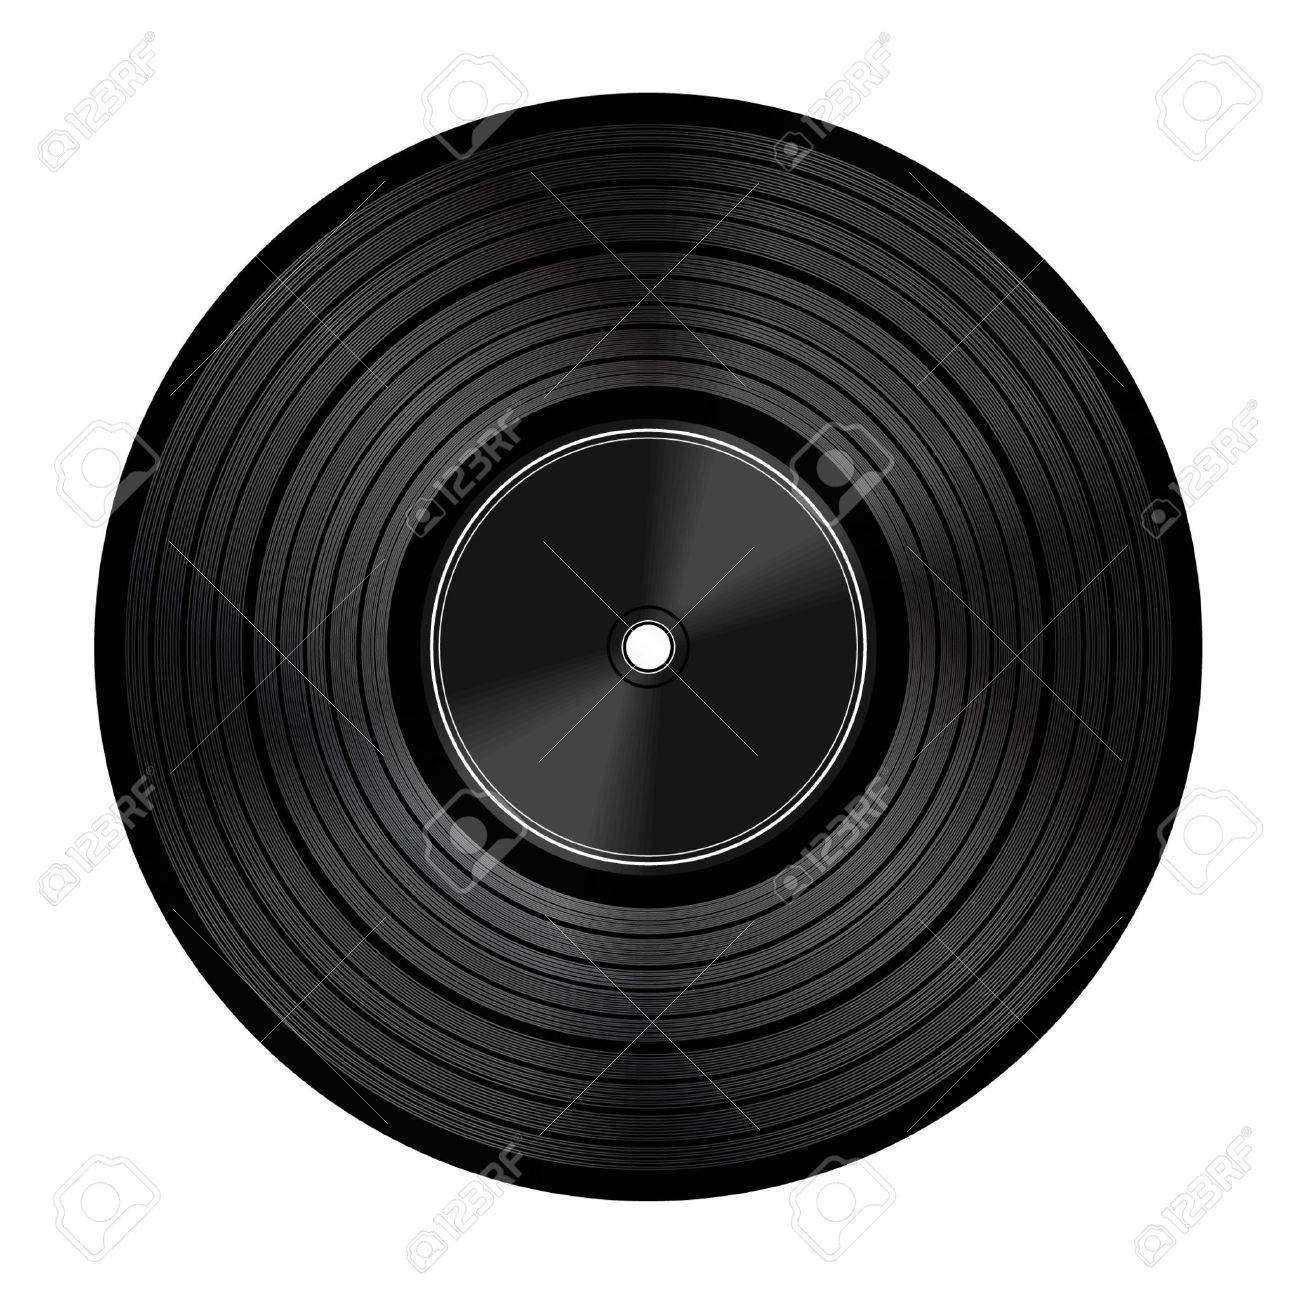 Vinyl audio disc Stock Vector - 11319538